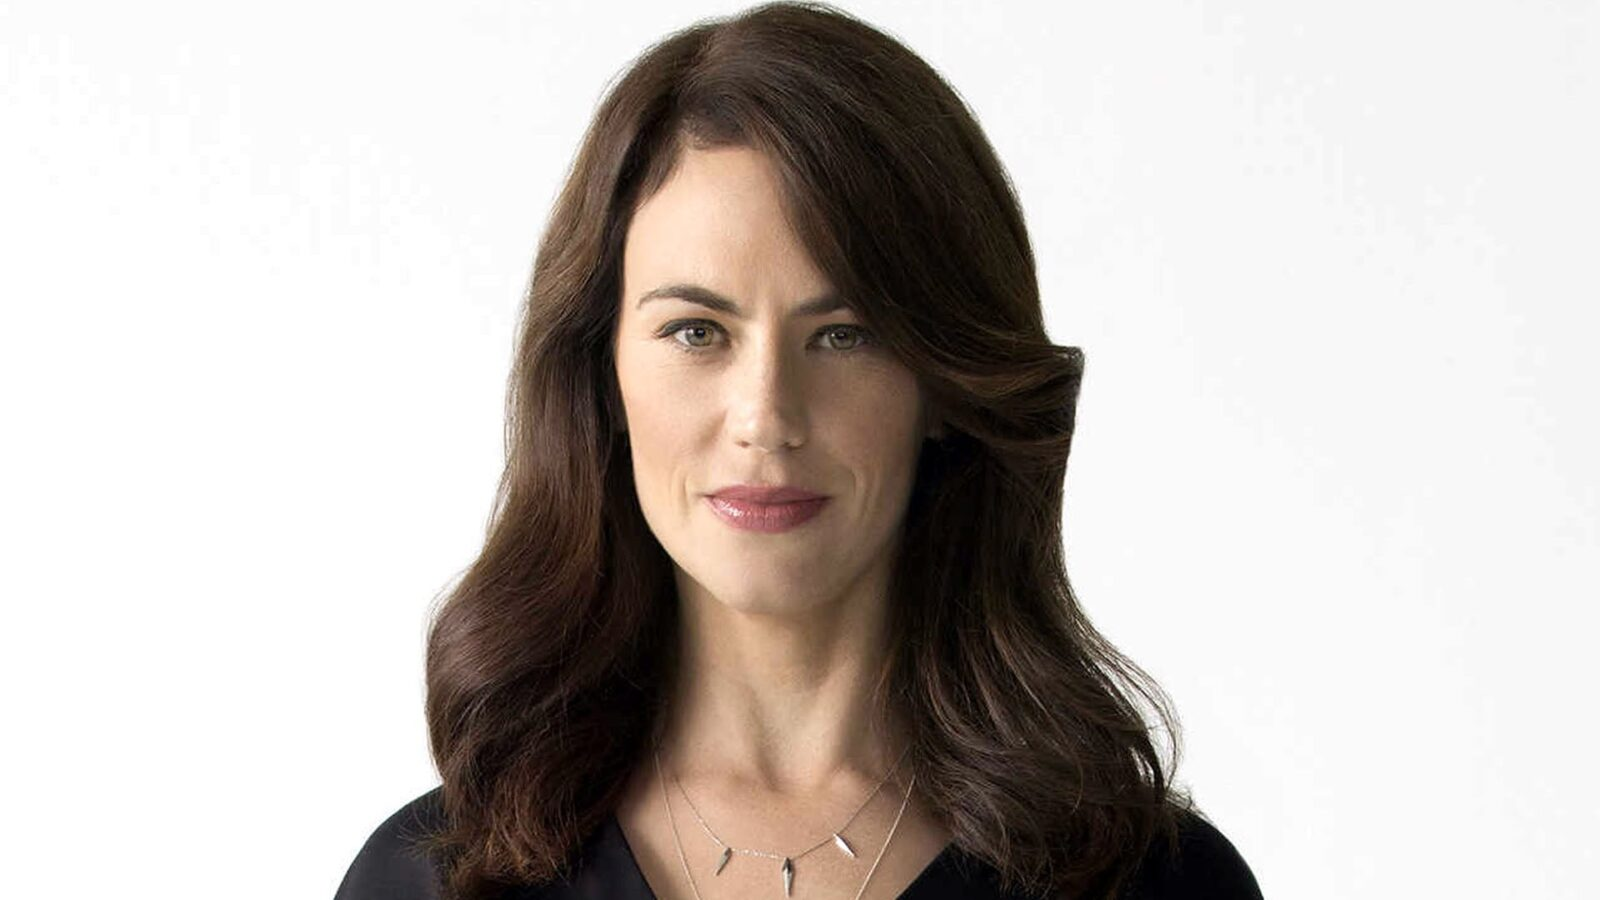 Sport Cars Wallpapers With Girls 10 Maggie Siff Hd Wallpapers Free Download